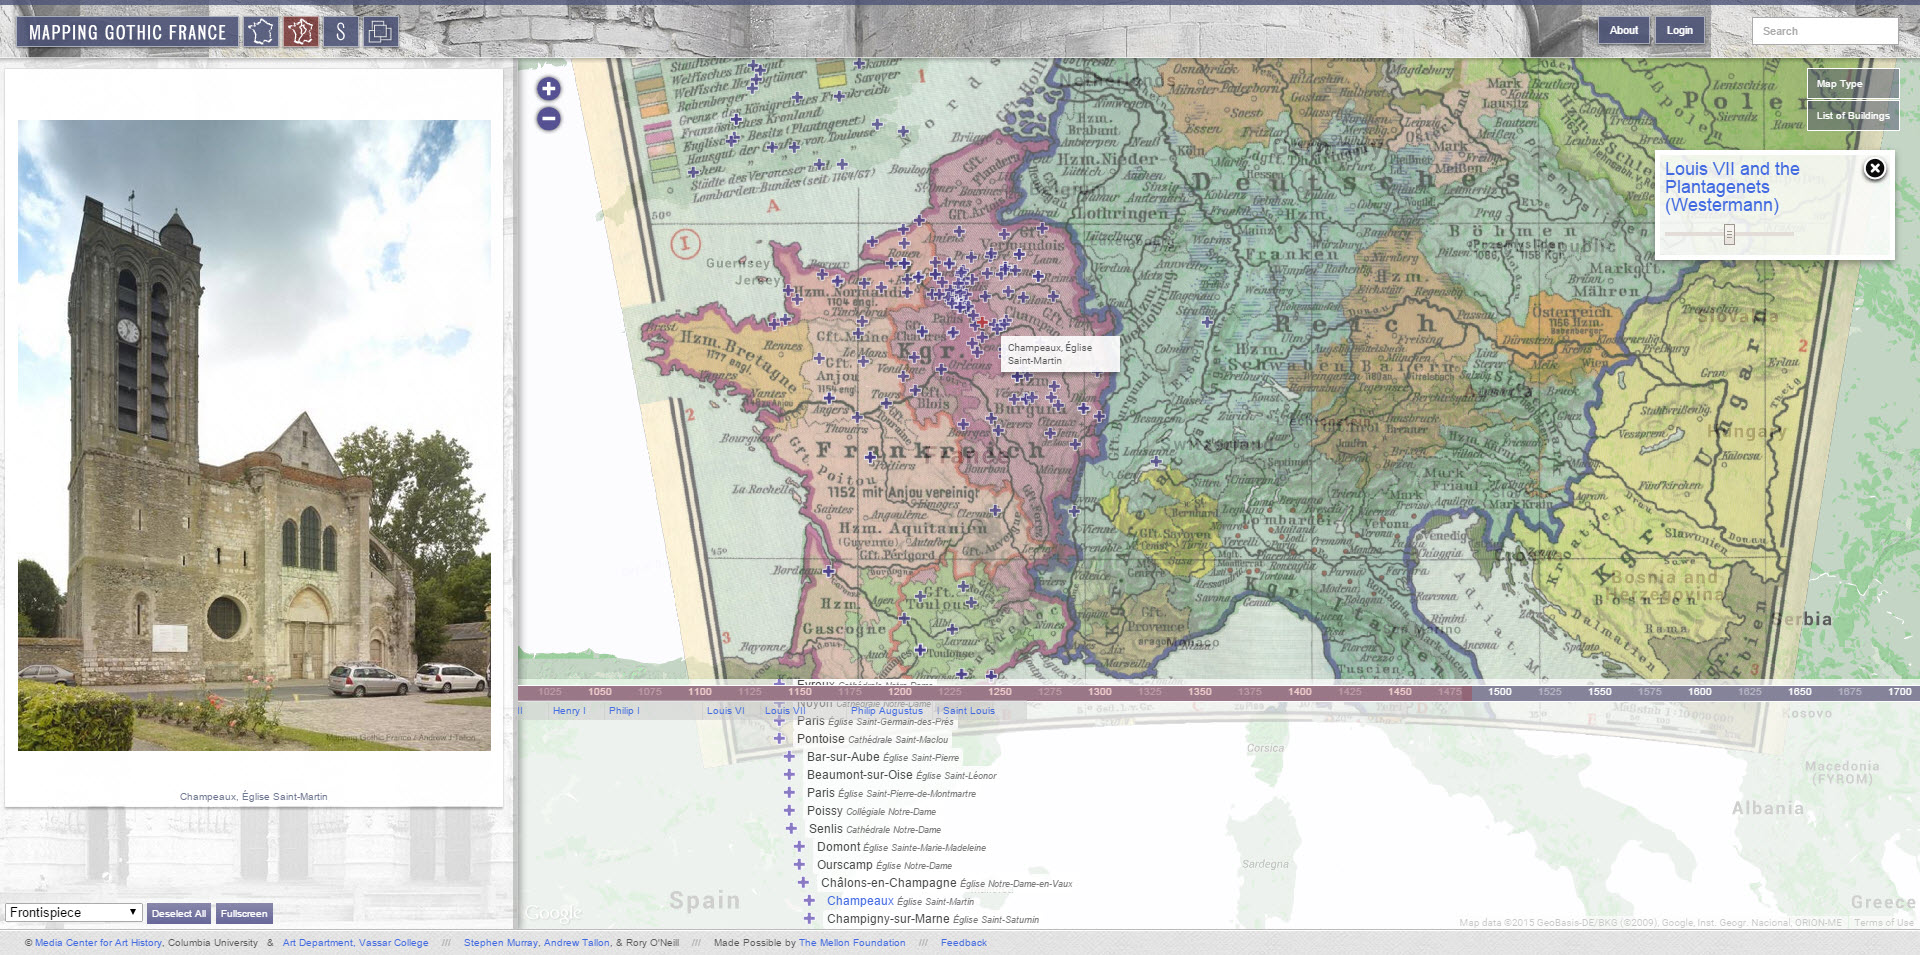 Mapping Gothic France